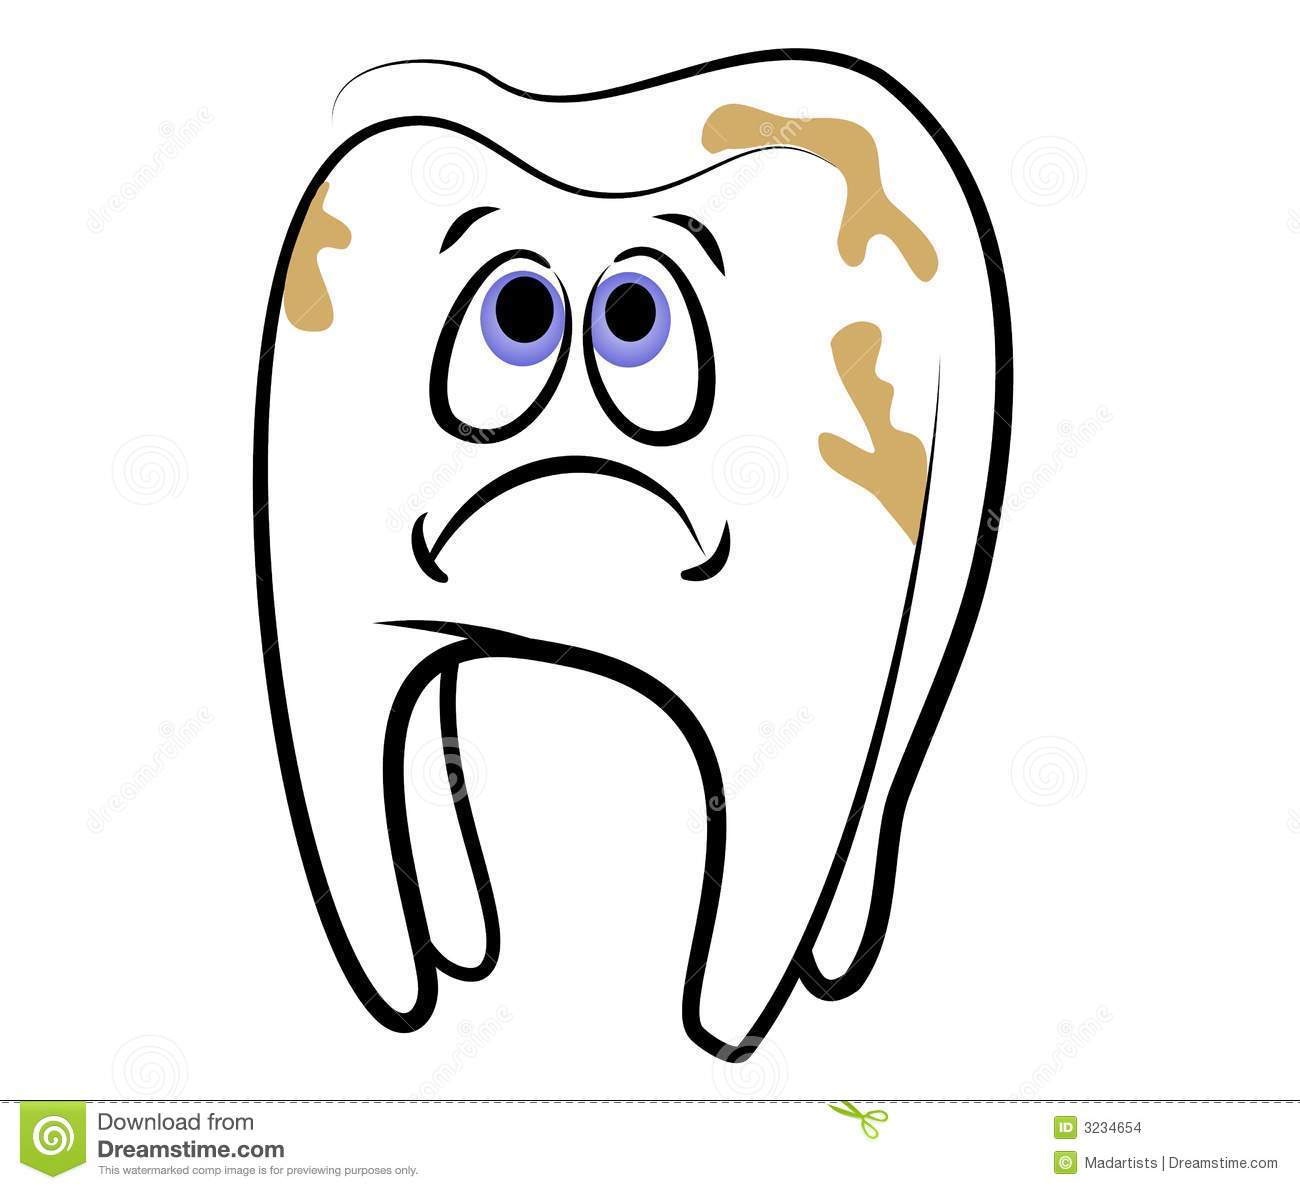 Clip Art Illustration Of A Cartoonish Looking White Tooth With A Sad